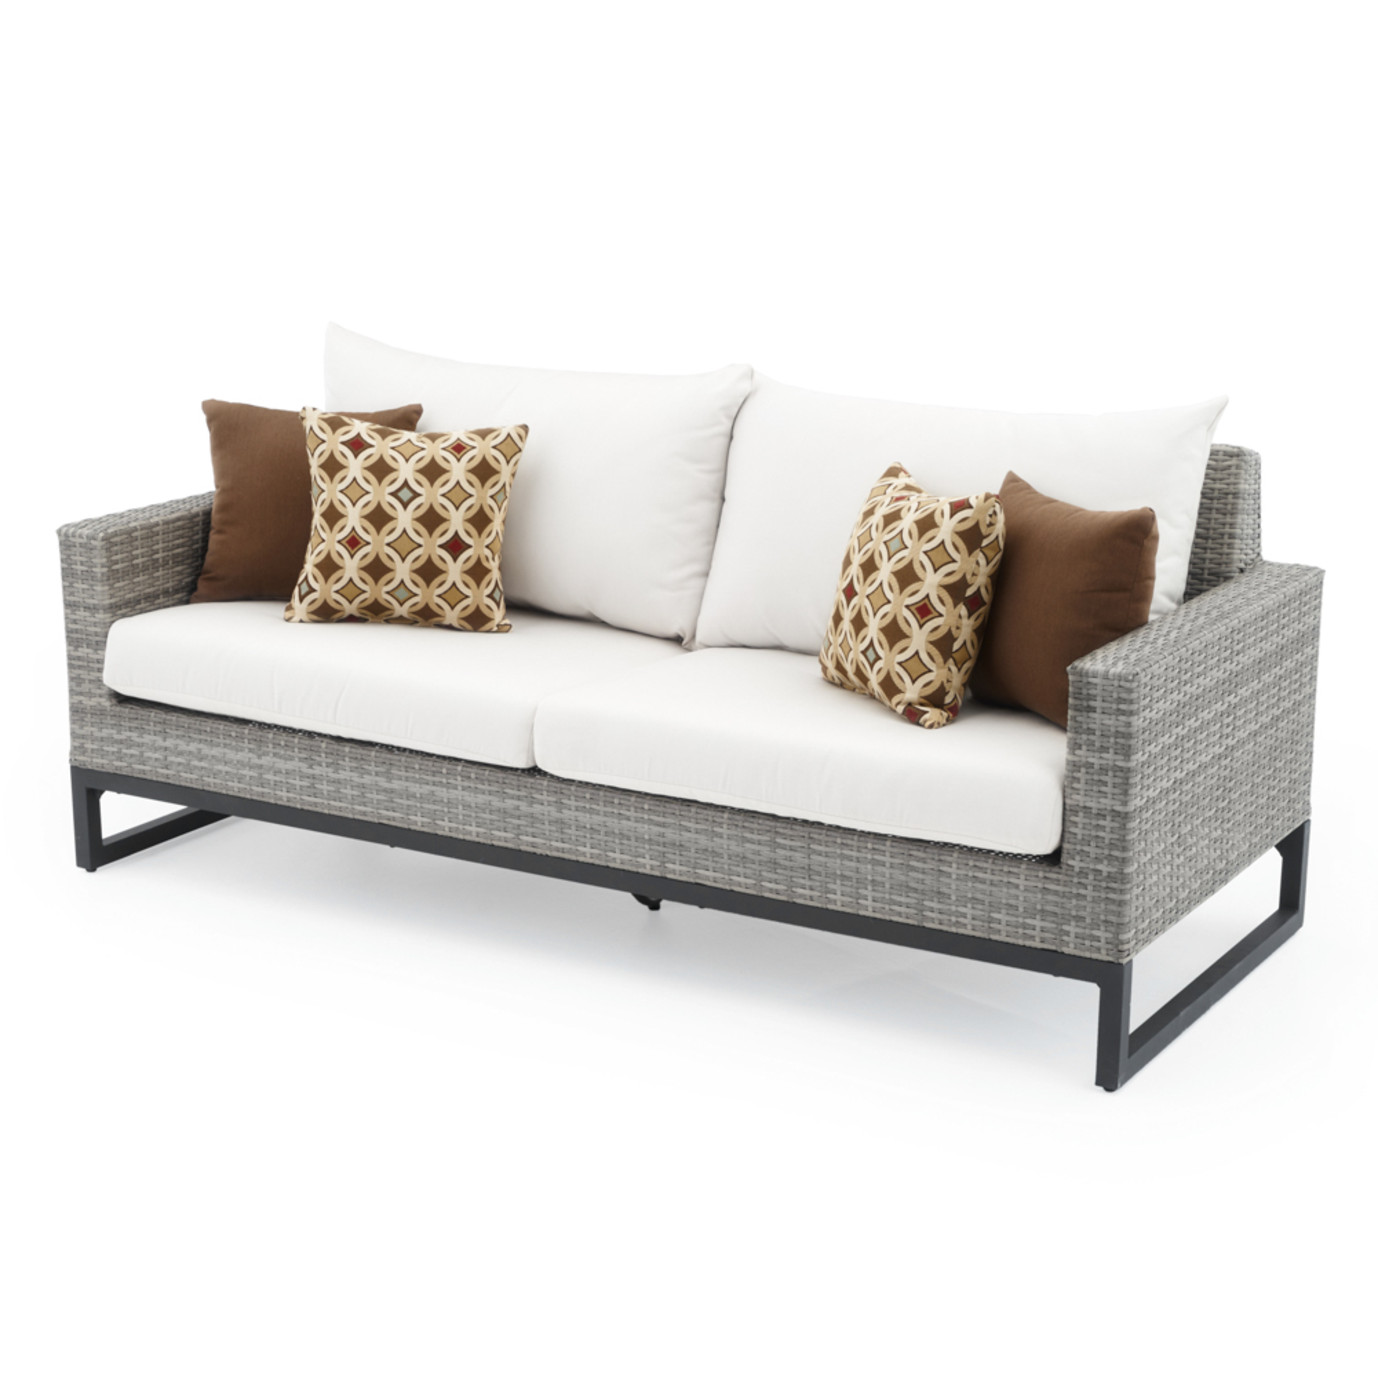 Milo™ Gray 78in Sofa - Moroccan Cream